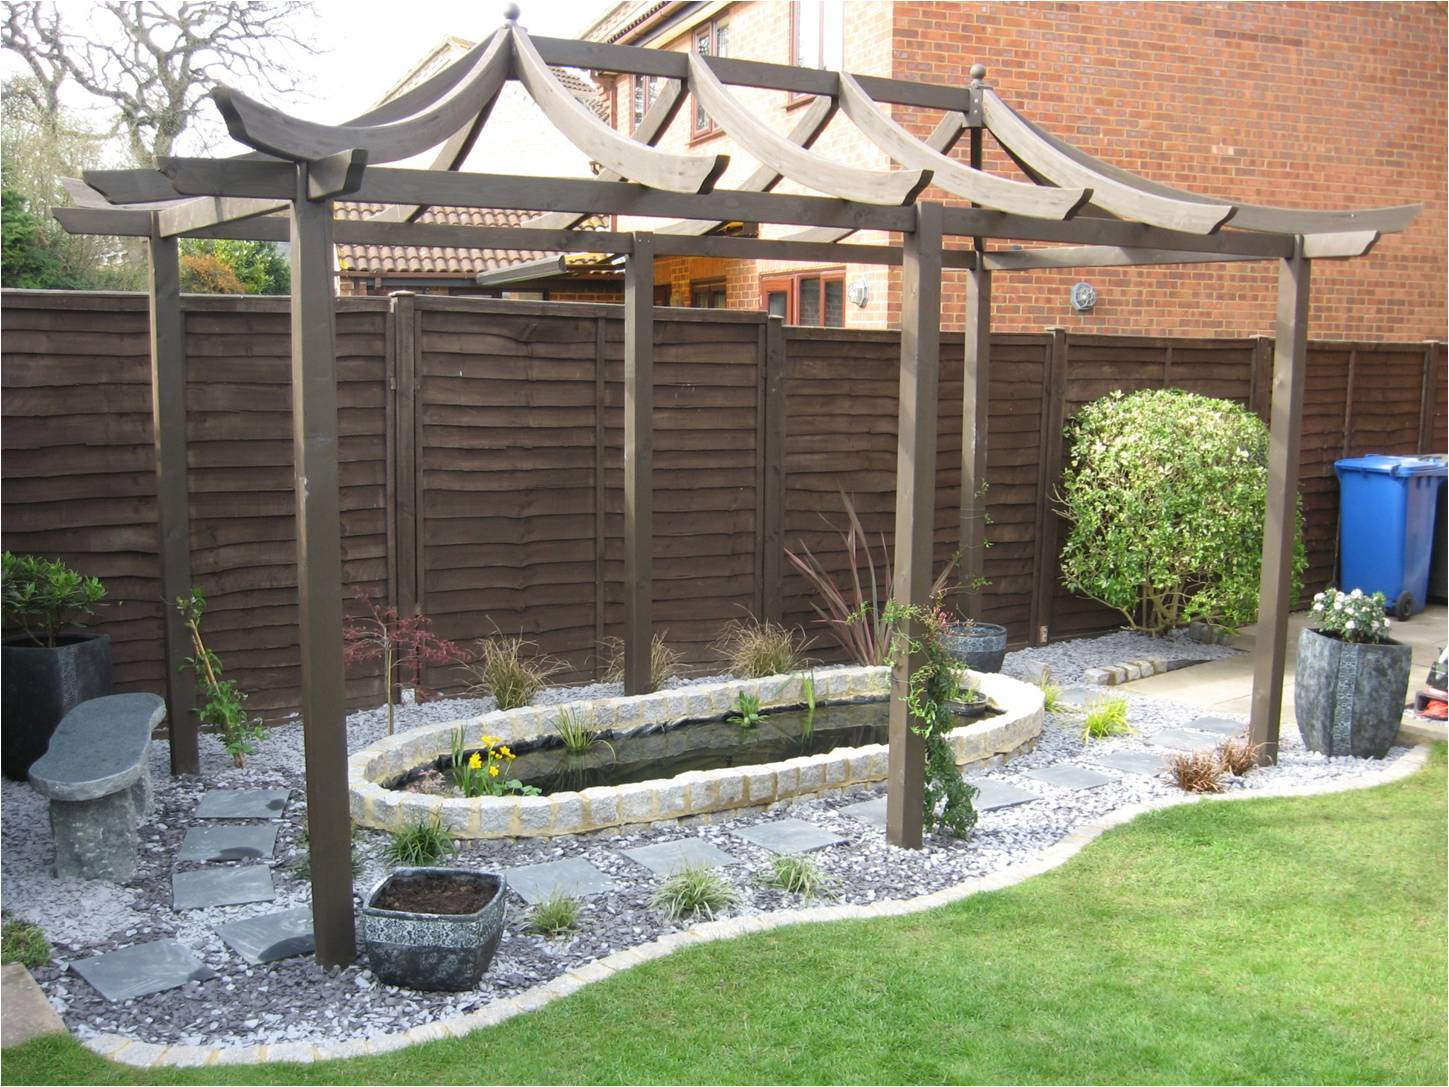 Japanese style pond garden dave reeves landscaping for Japanese style pond